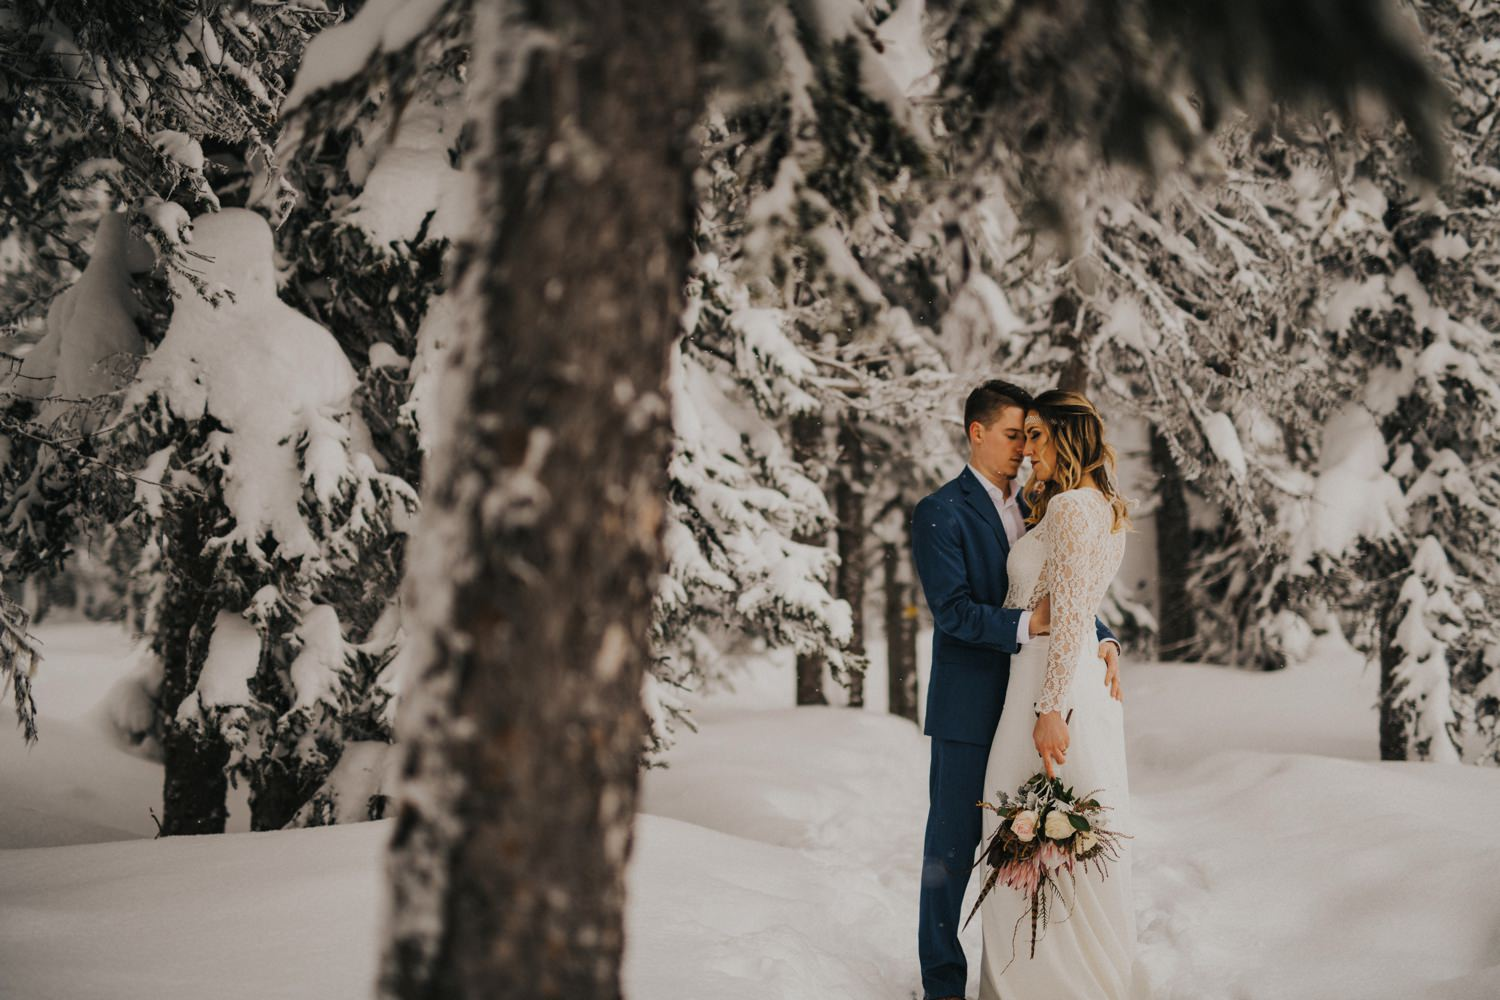 Okanagan Winter Elopement - Joelsview Photography_0012